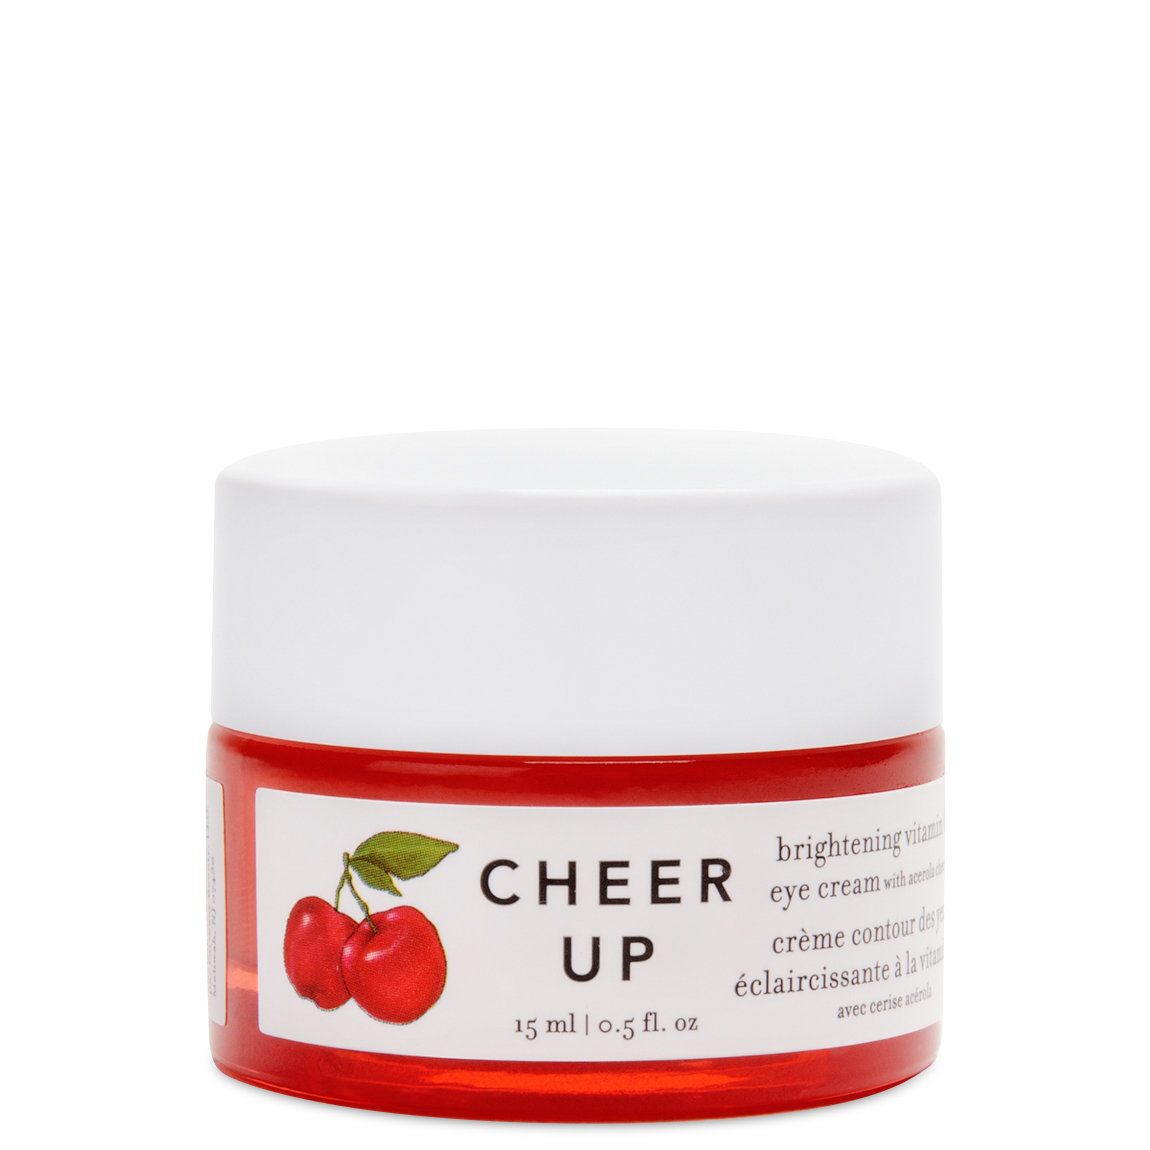 Farmacy Cheer Up Brightening Vitamin C Eye Cream alternative view 1 - product swatch.